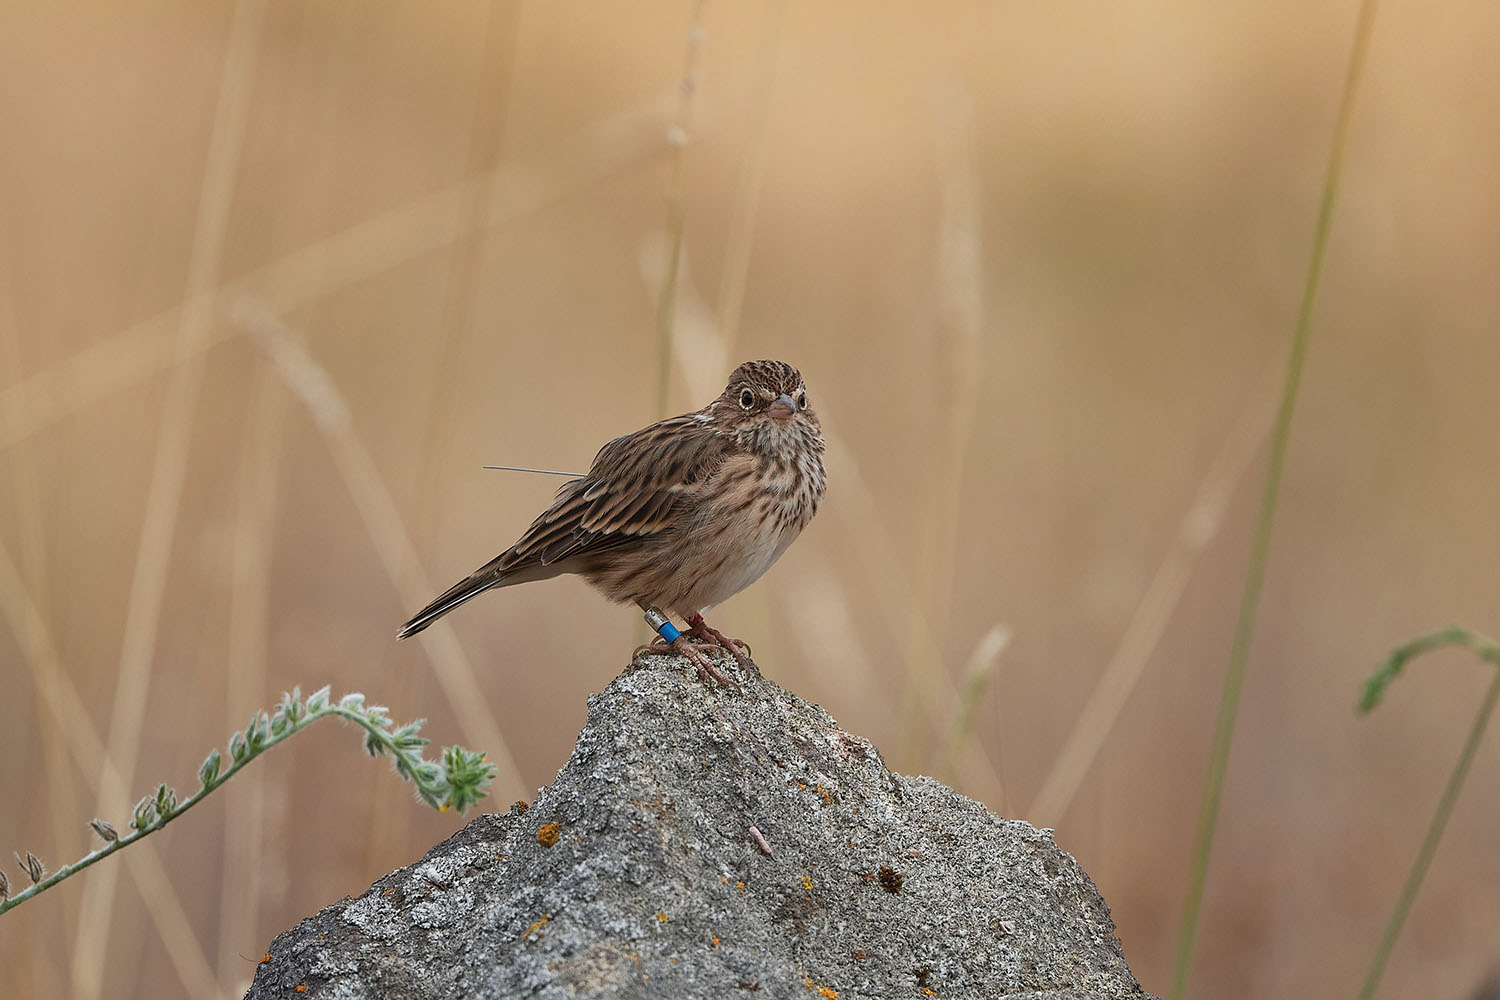 IMPERILED: An Oregon Vesper Sparrow carries a GPS tag. The subspecies has never been tracked year-round before, and new research aims to uncover important information about its migratory routes and overwintering areas. Photo by Frank Lospalluto